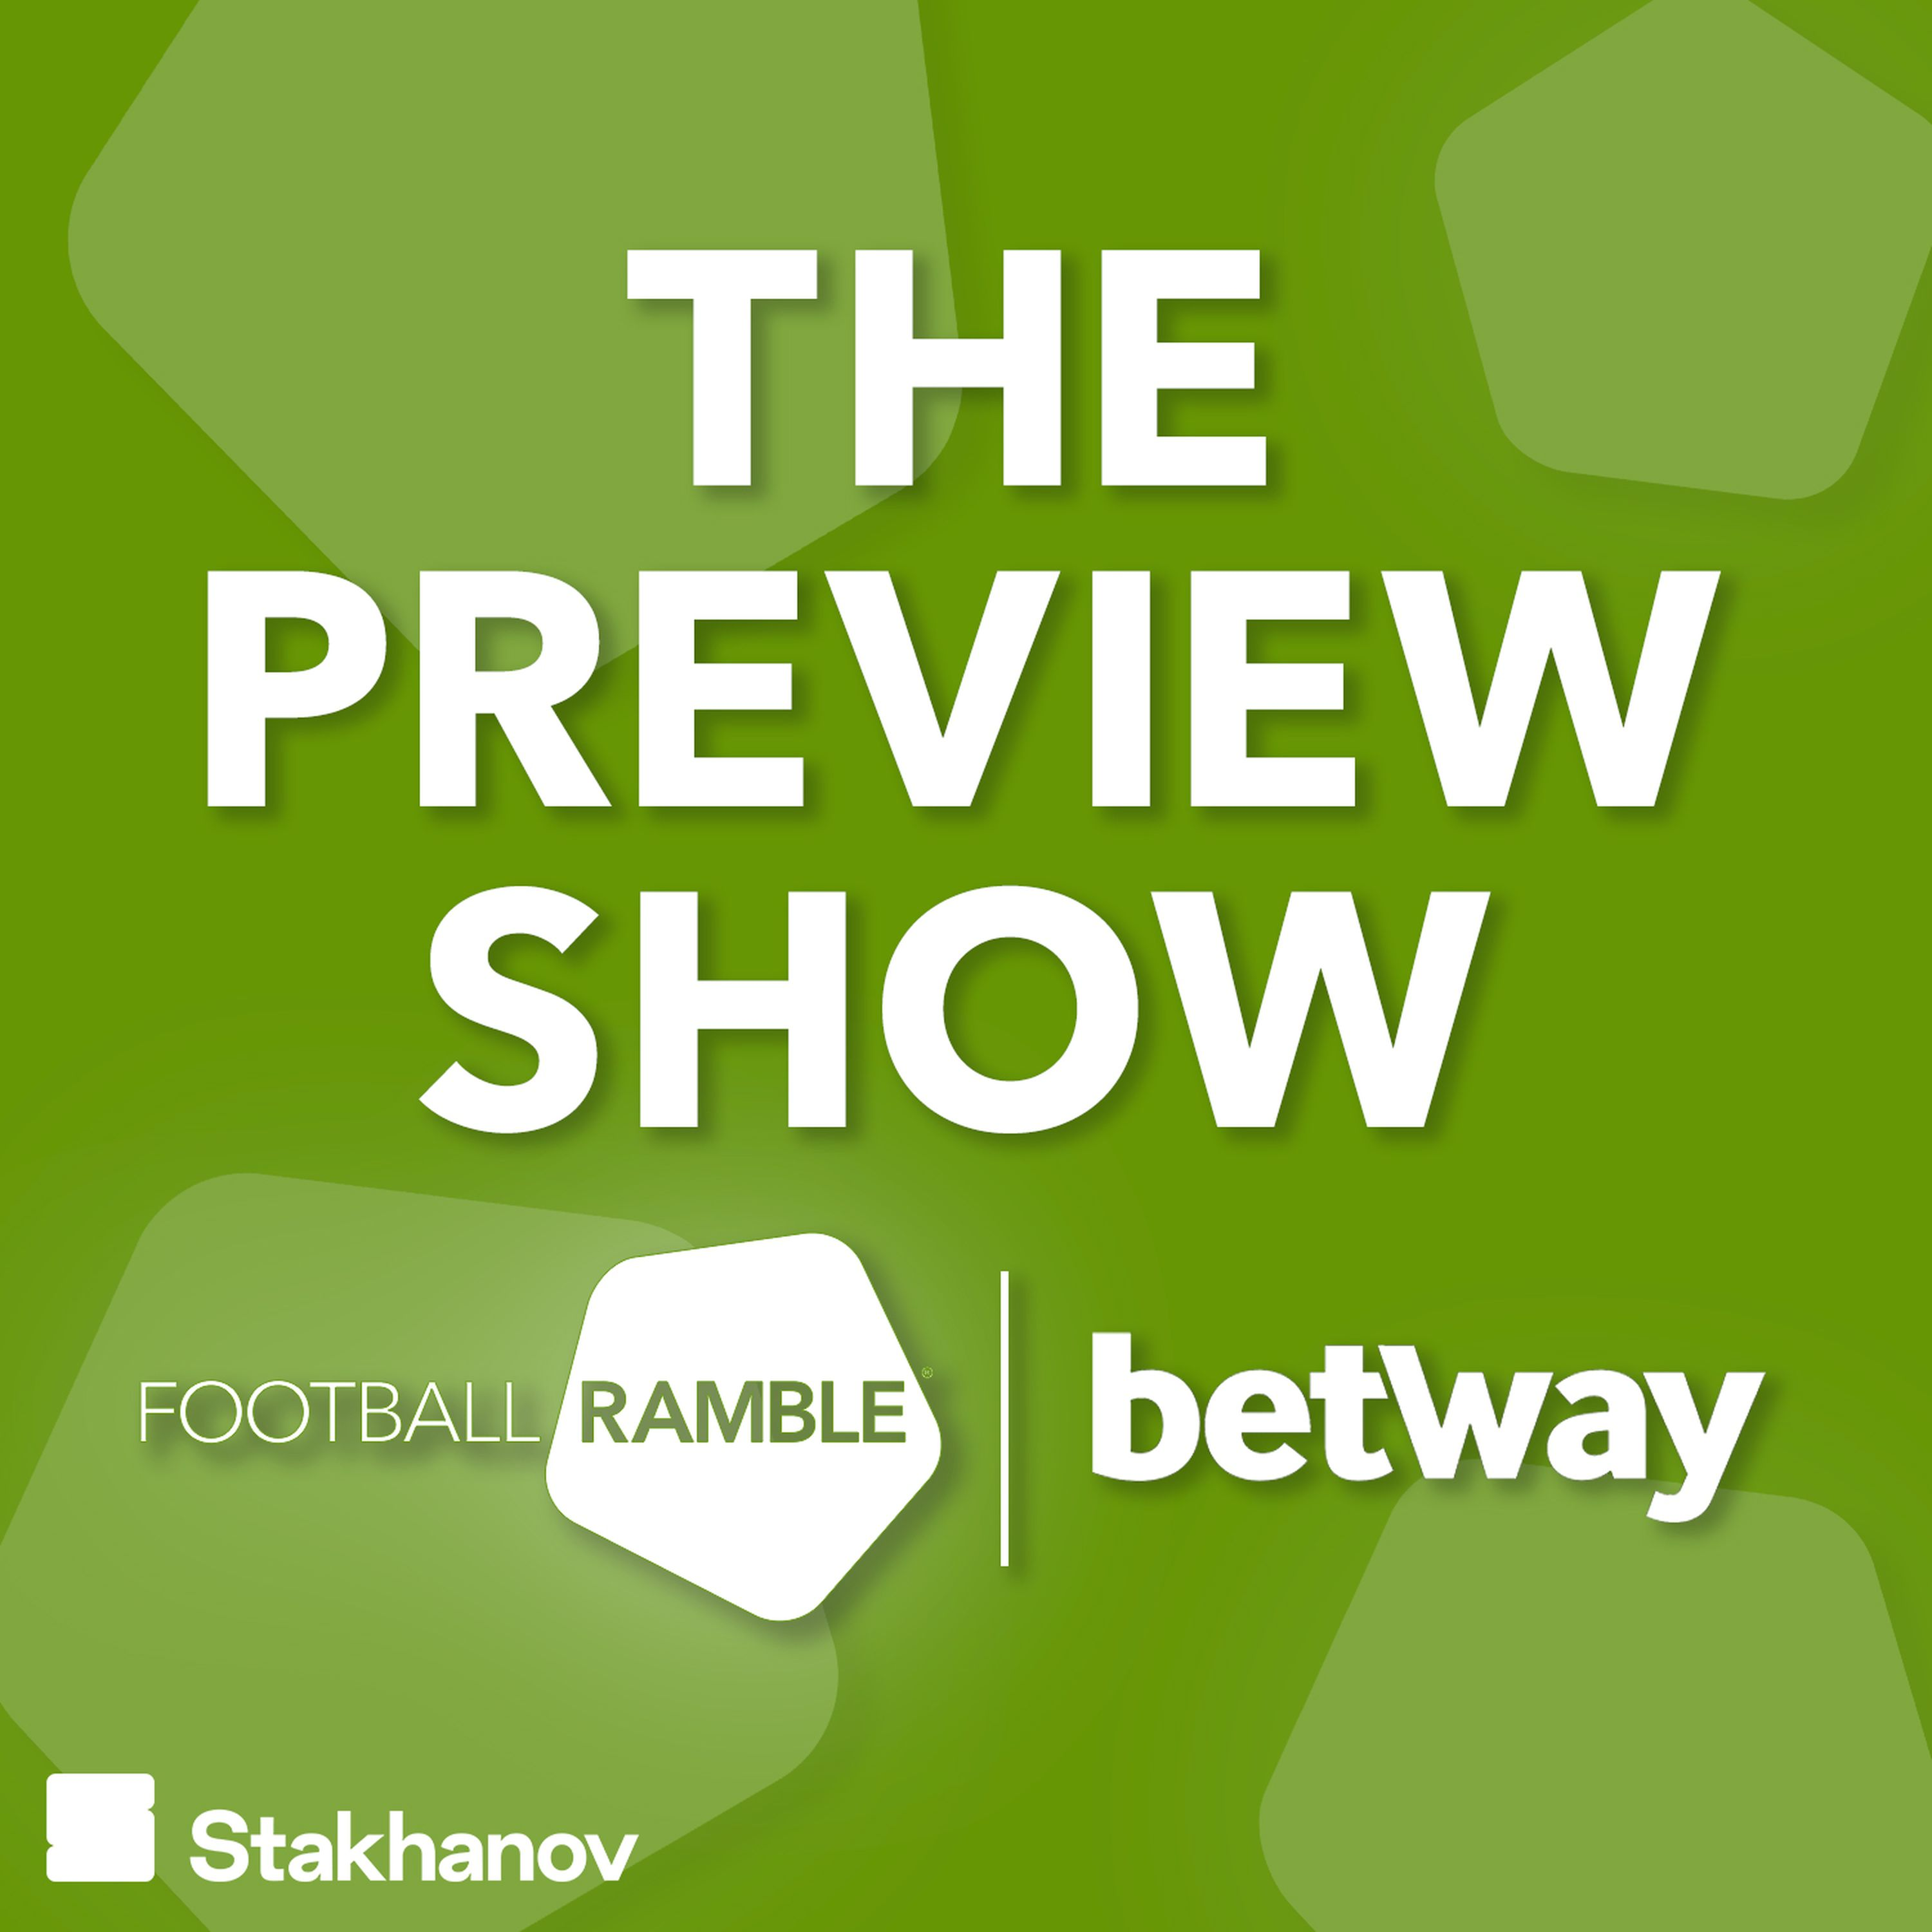 The Preview Show: Germany duke out a draw with Spain, Wales and Ireland get positive results, and we look ahead to England v Iceland